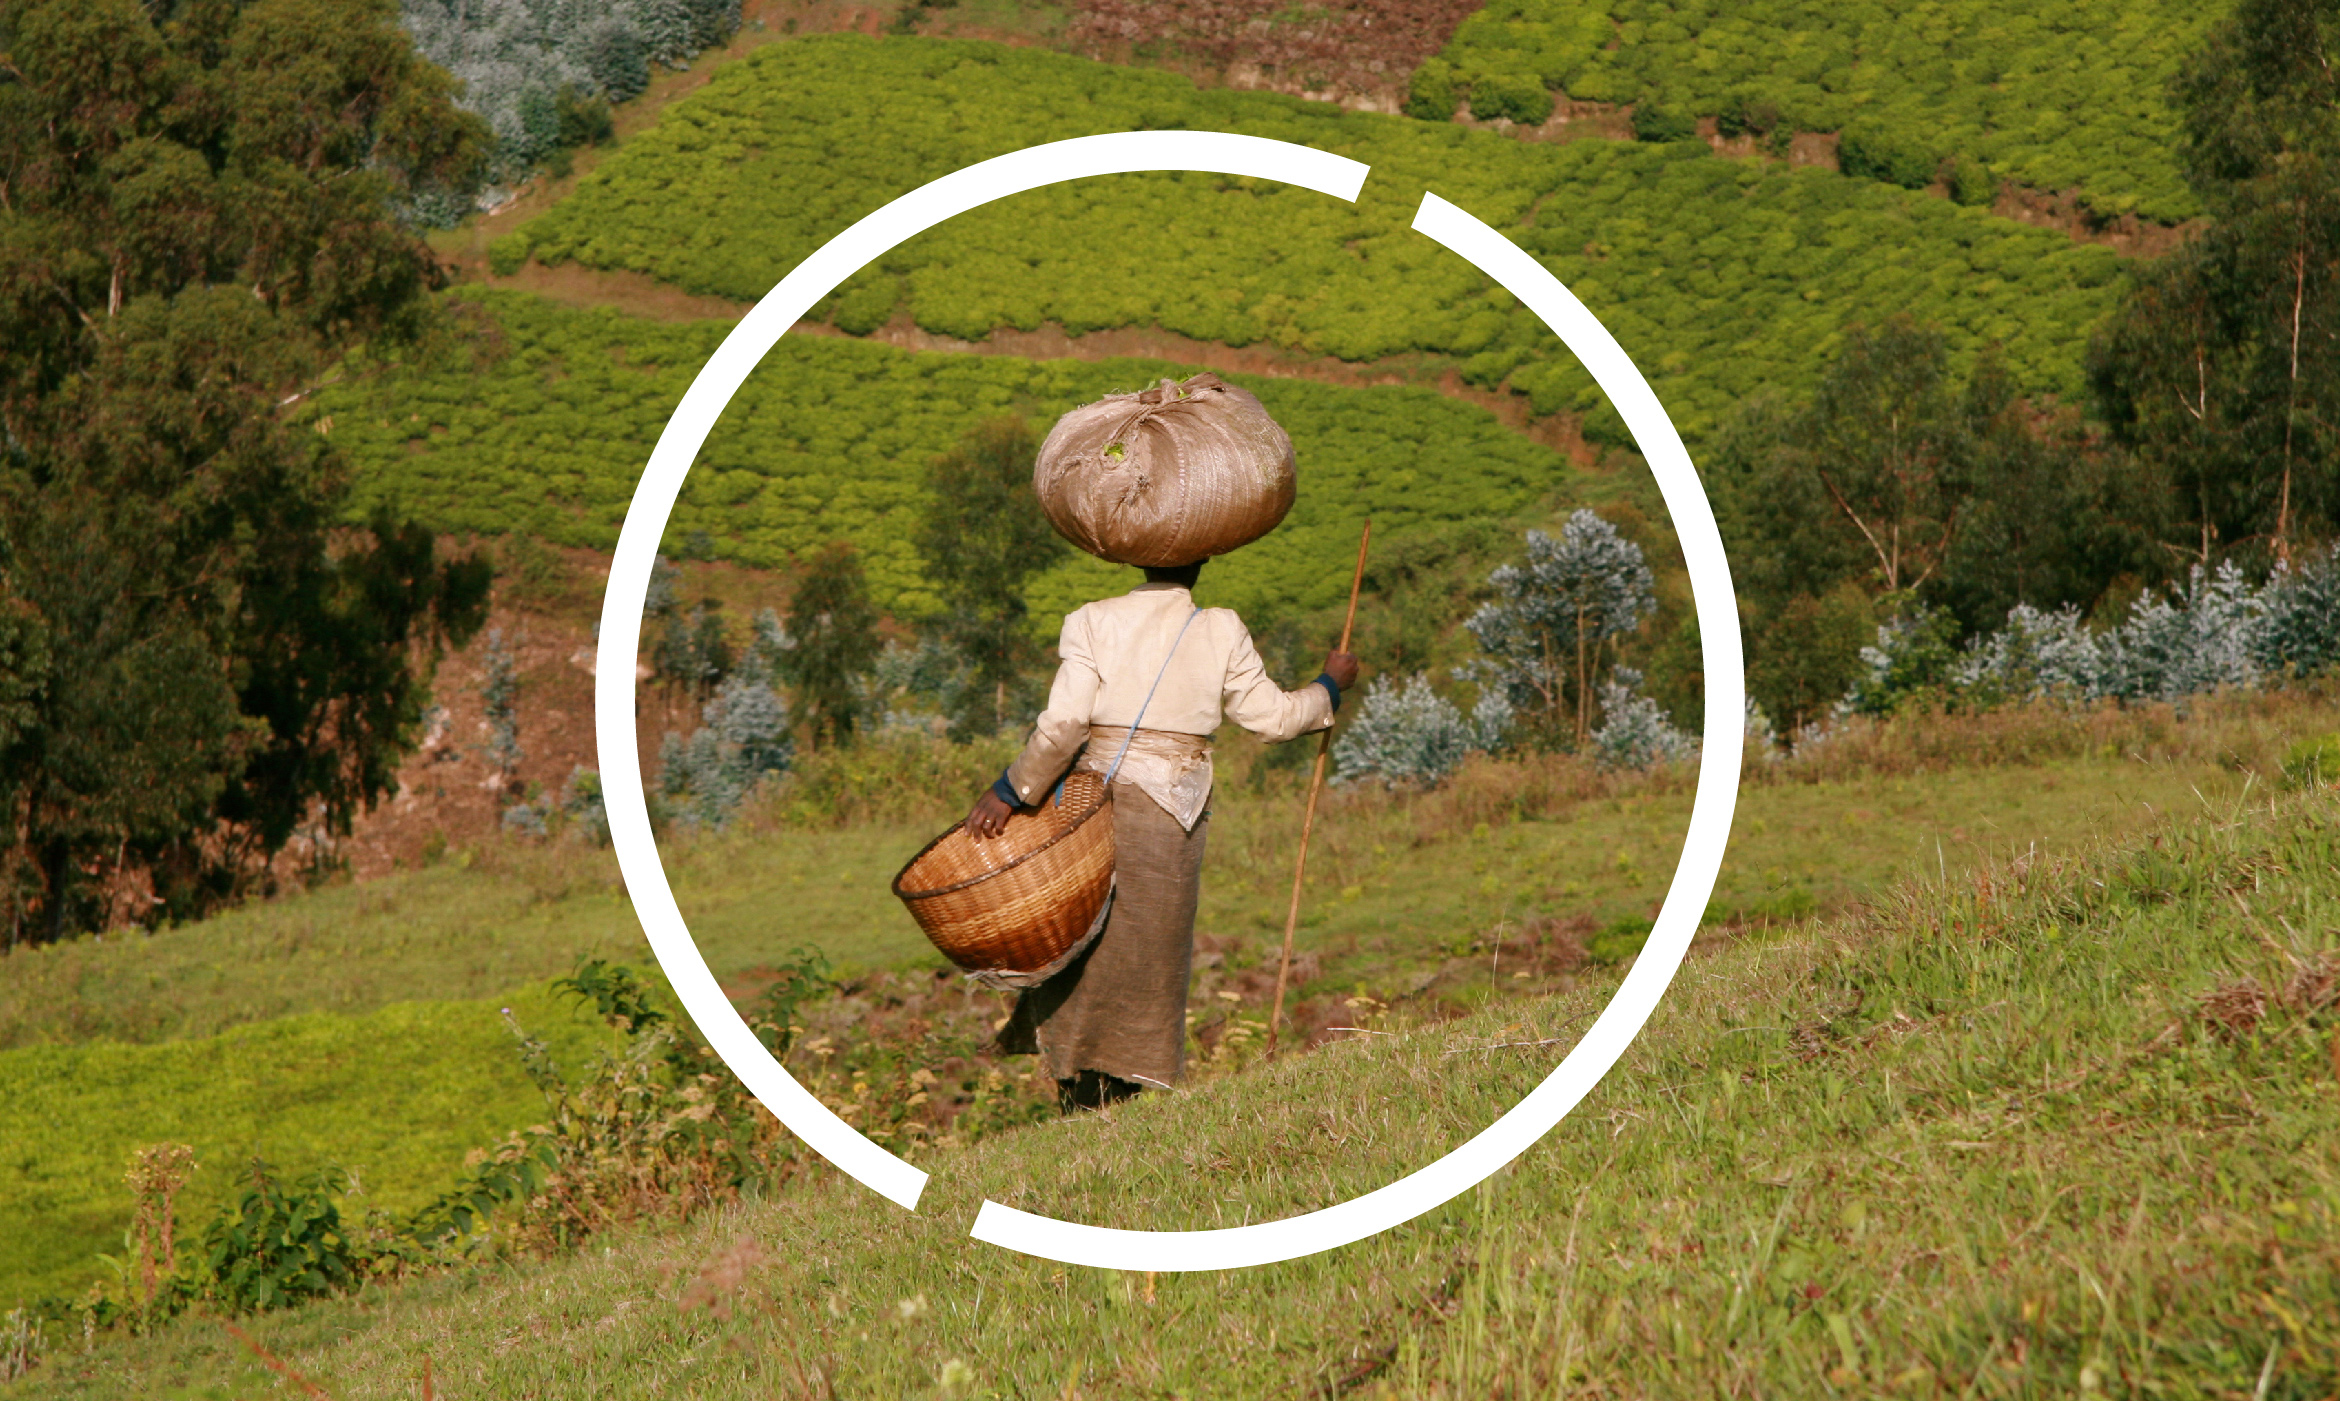 This powerful photo of a woman harvesting in a field and carrying what she has gathered on her head is framed by the Institute for Sustainable Development graphic element of a circle and two empty spaces that represent the tilt of the earth' axis at 23.5 degrees.